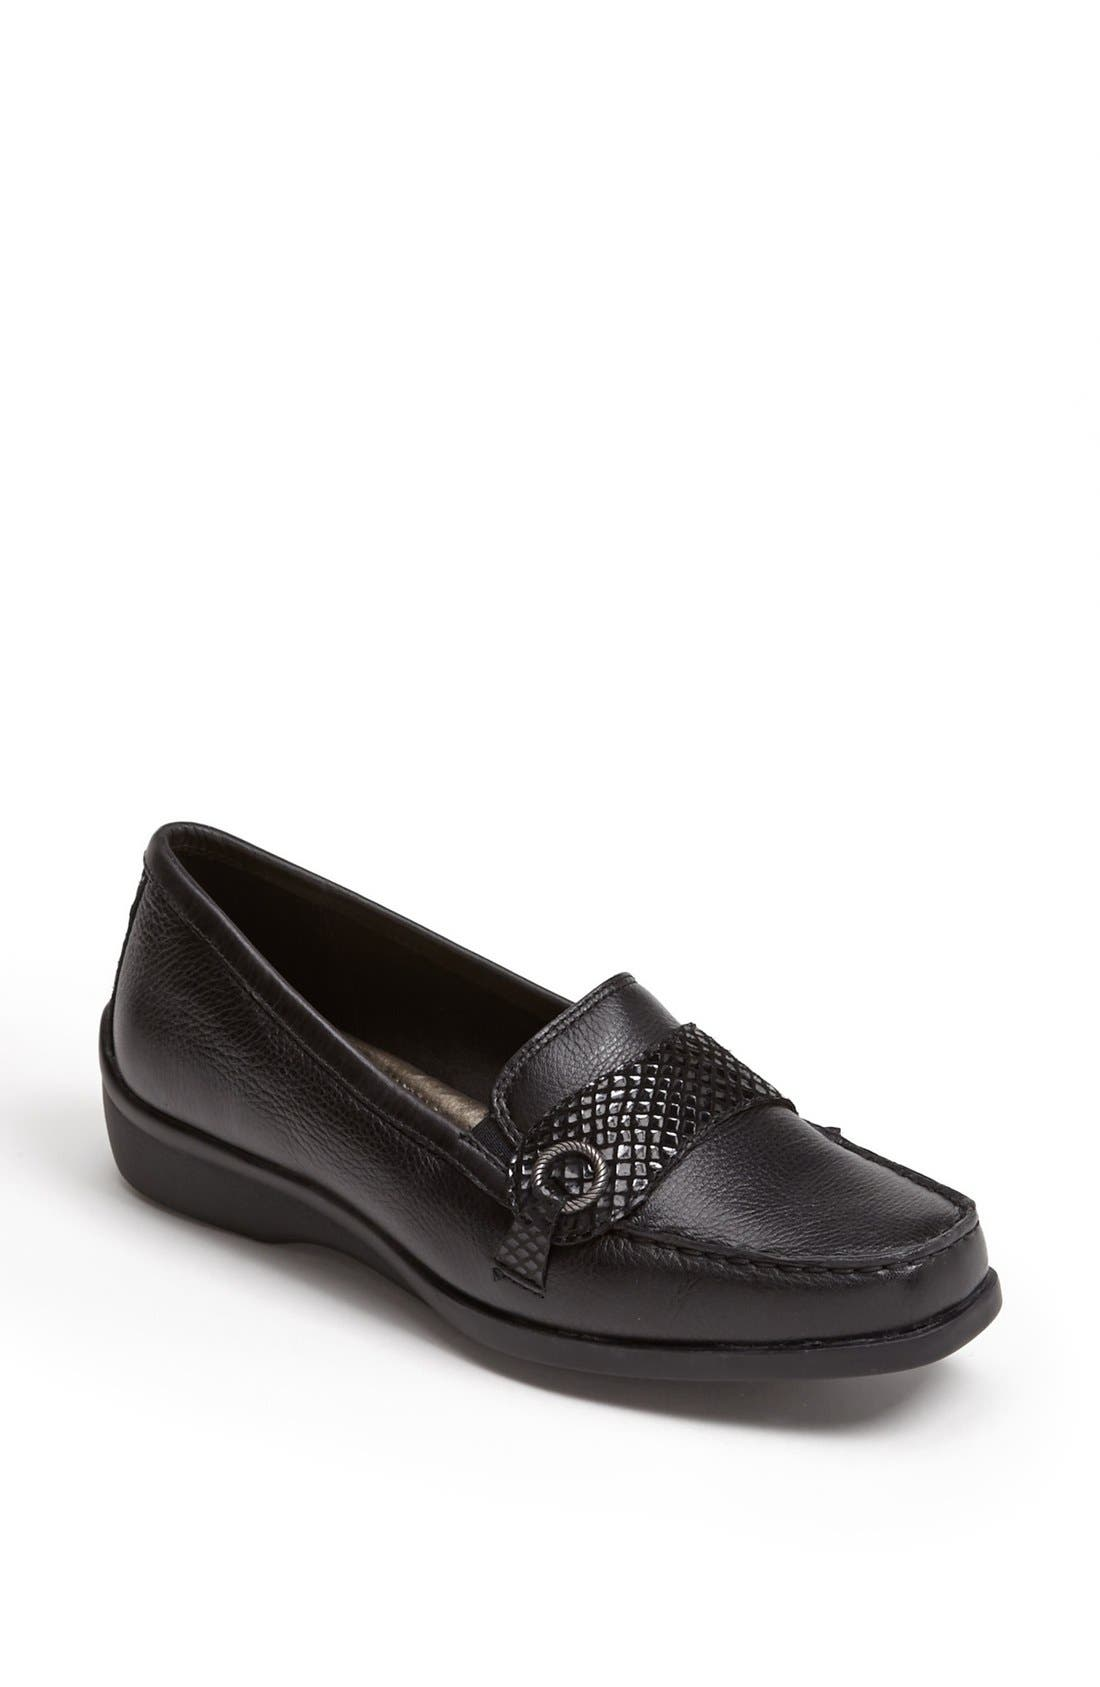 Alternate Image 1 Selected - Aravon 'Winnie' Loafer